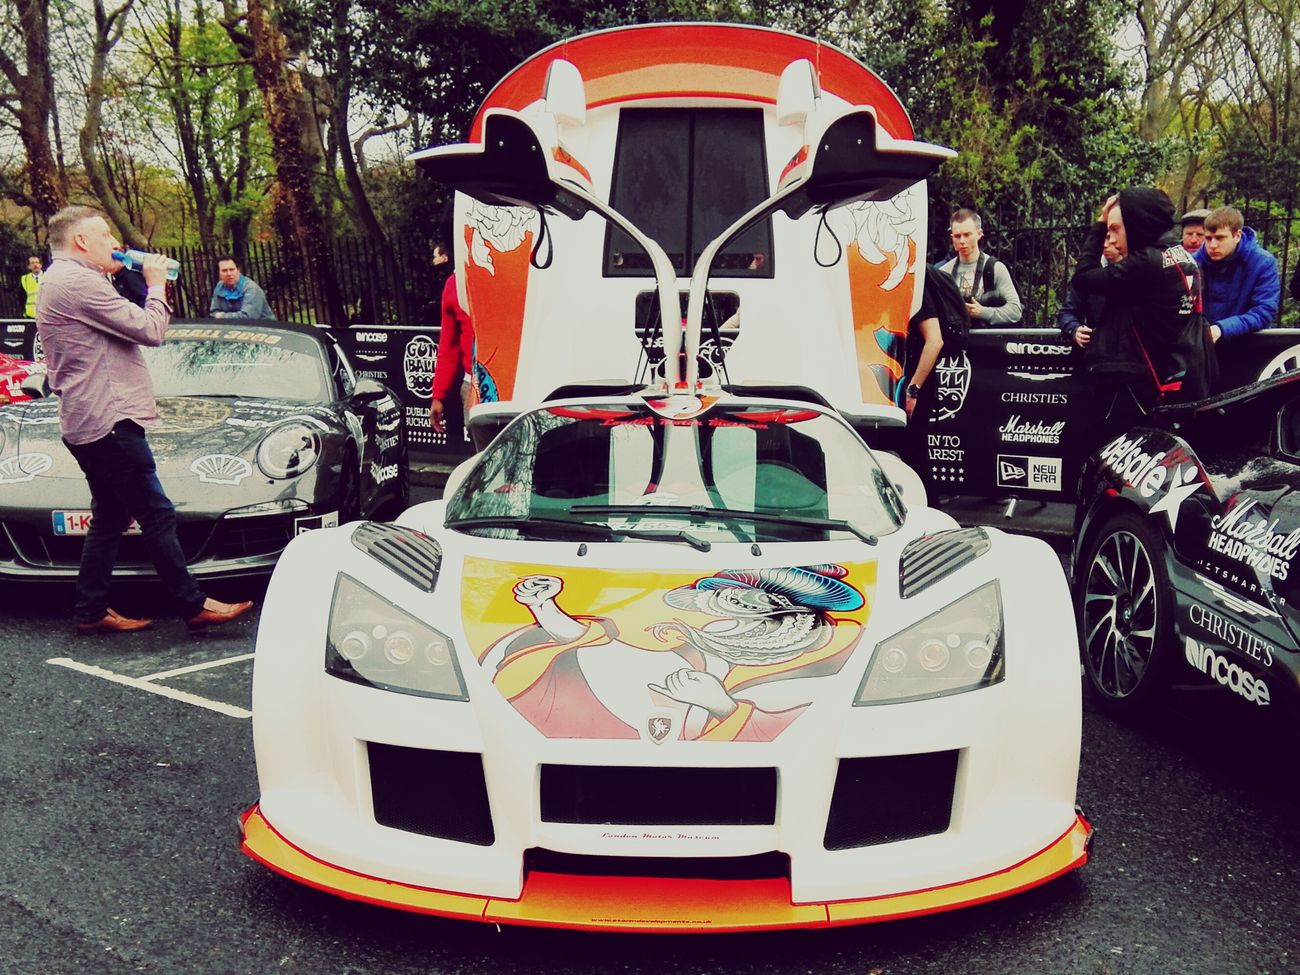 Apollo Gumpert Gumpertapollo Gumpert Apollo Car Sports Car Supercar Hypercar Cool Car First Eyeem Photo